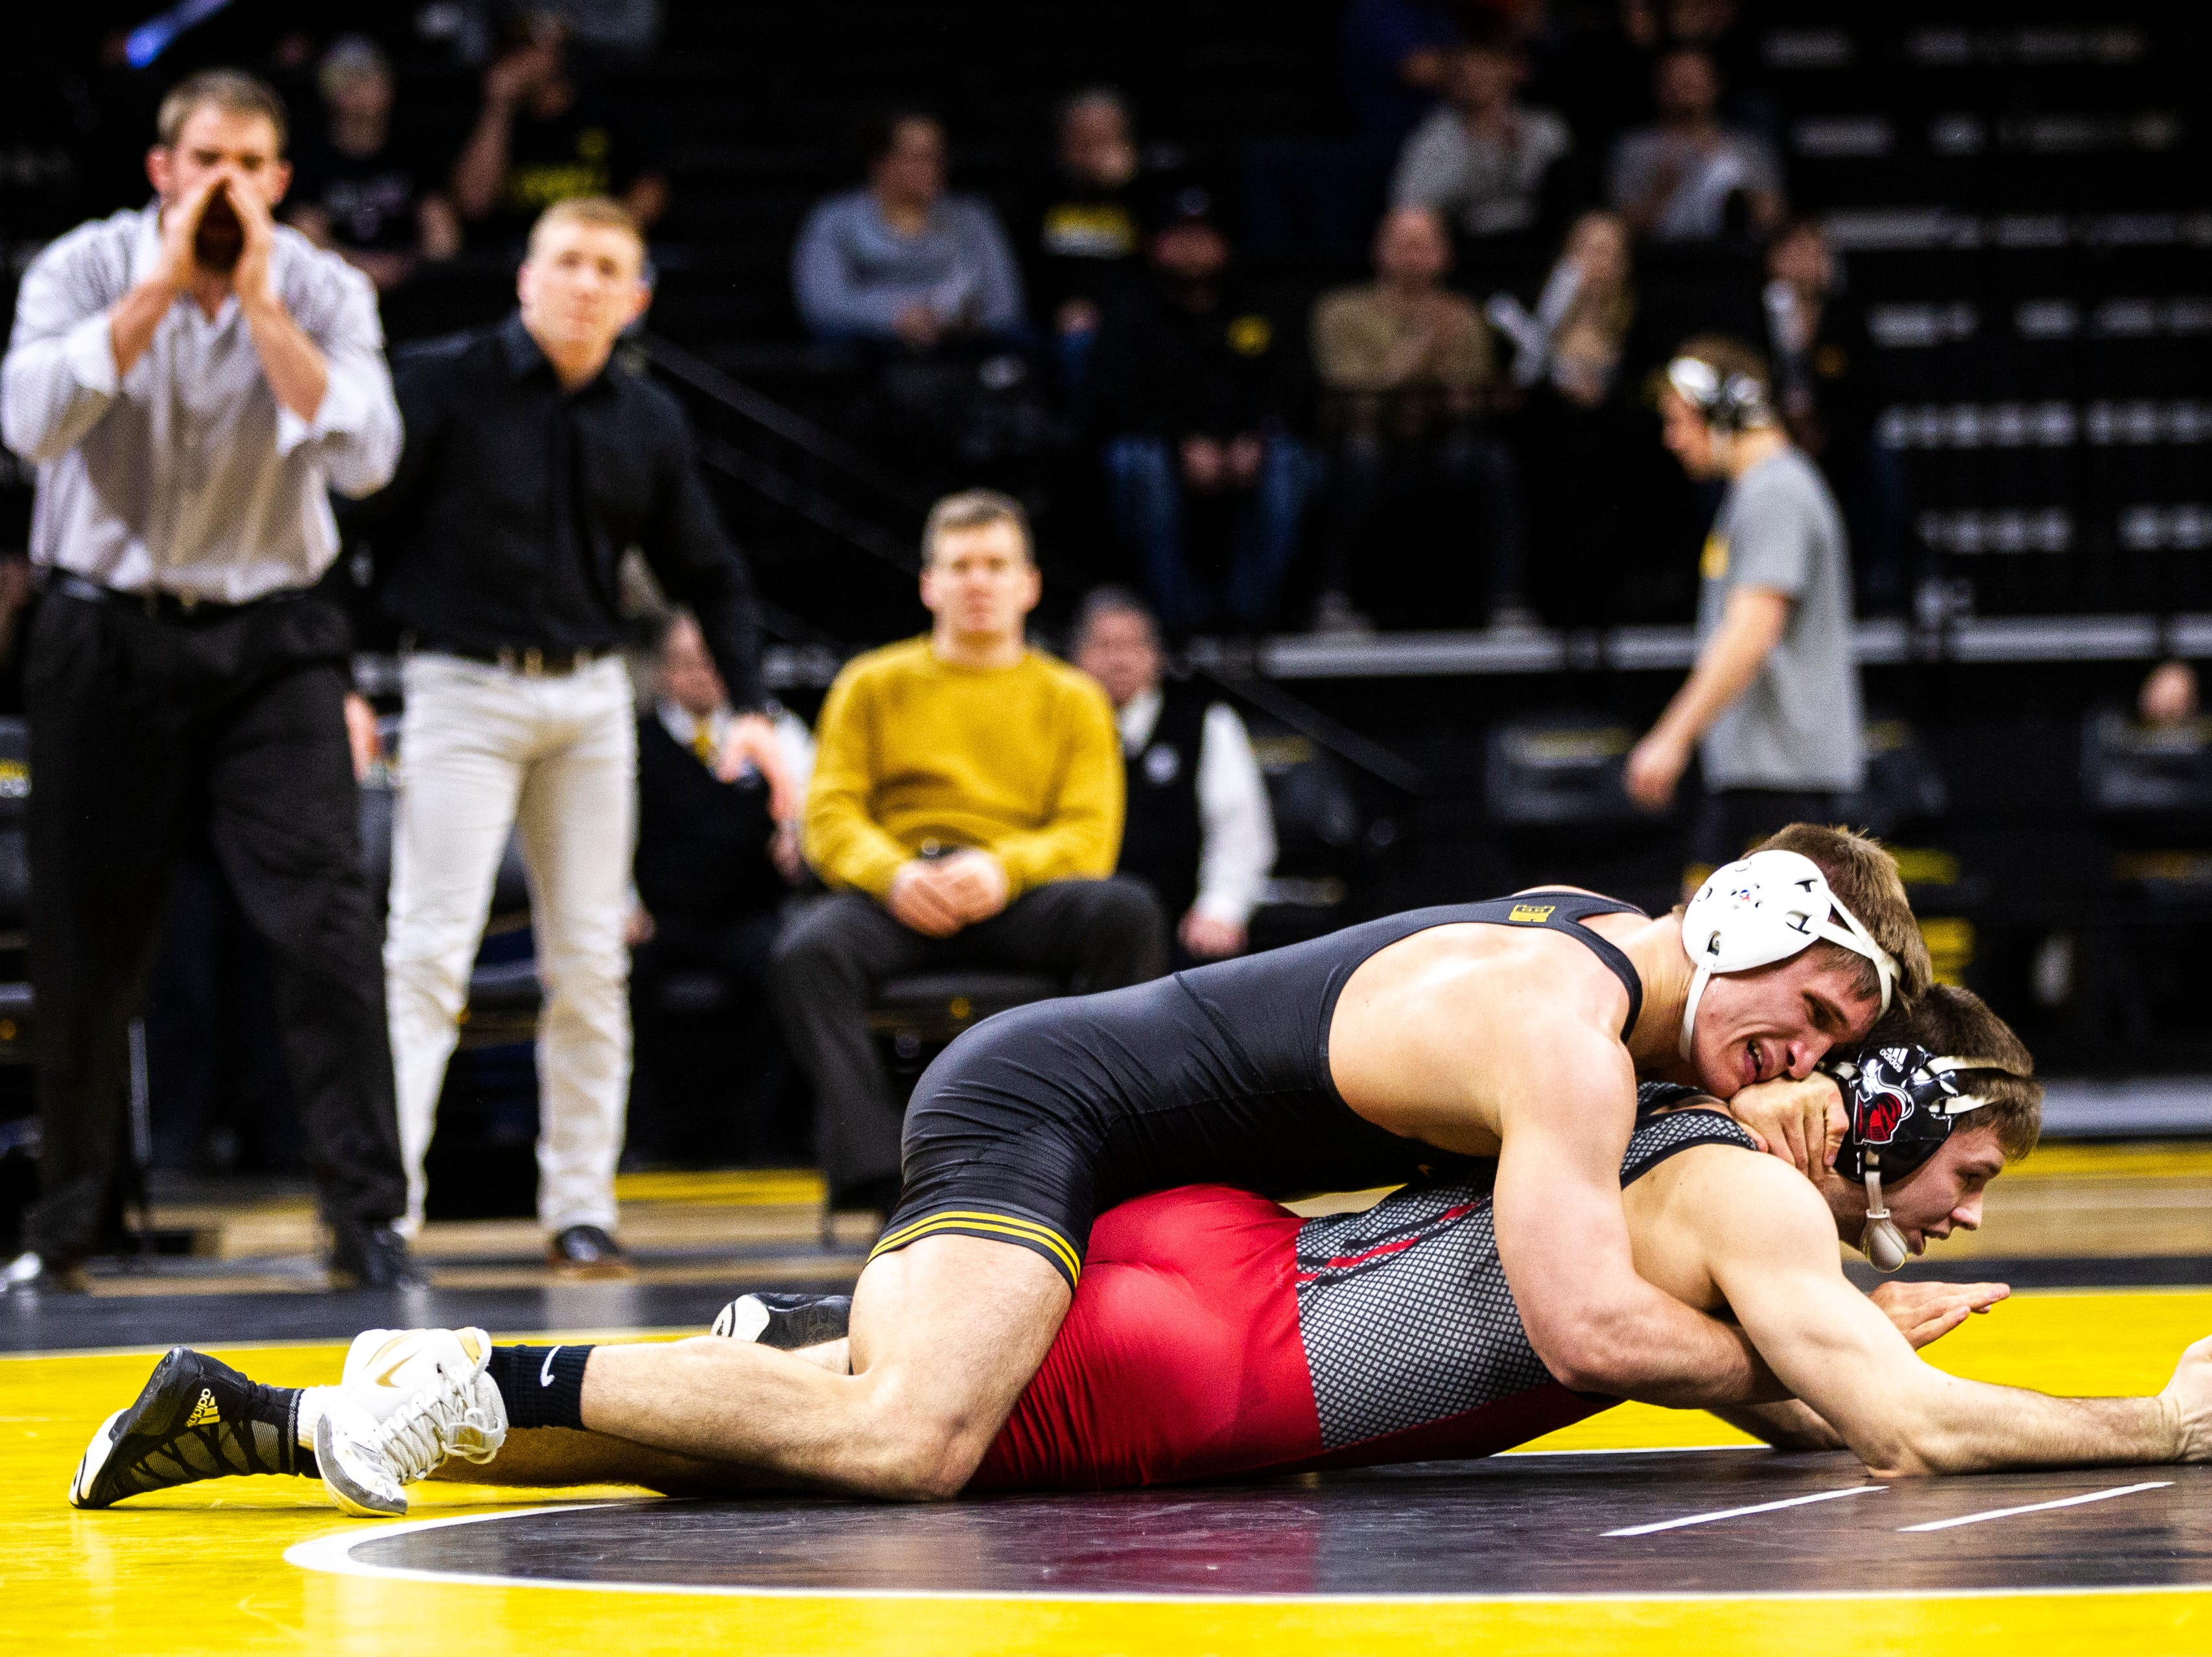 Iowa's Cash Wilcke, top, wrestles Rutgers' Willie Scott at 184 during a NCAA Big Ten Conference wrestling dual on Friday, Jan. 18, 2019, at Carver-Hawkeye Arena in Iowa City, Iowa.